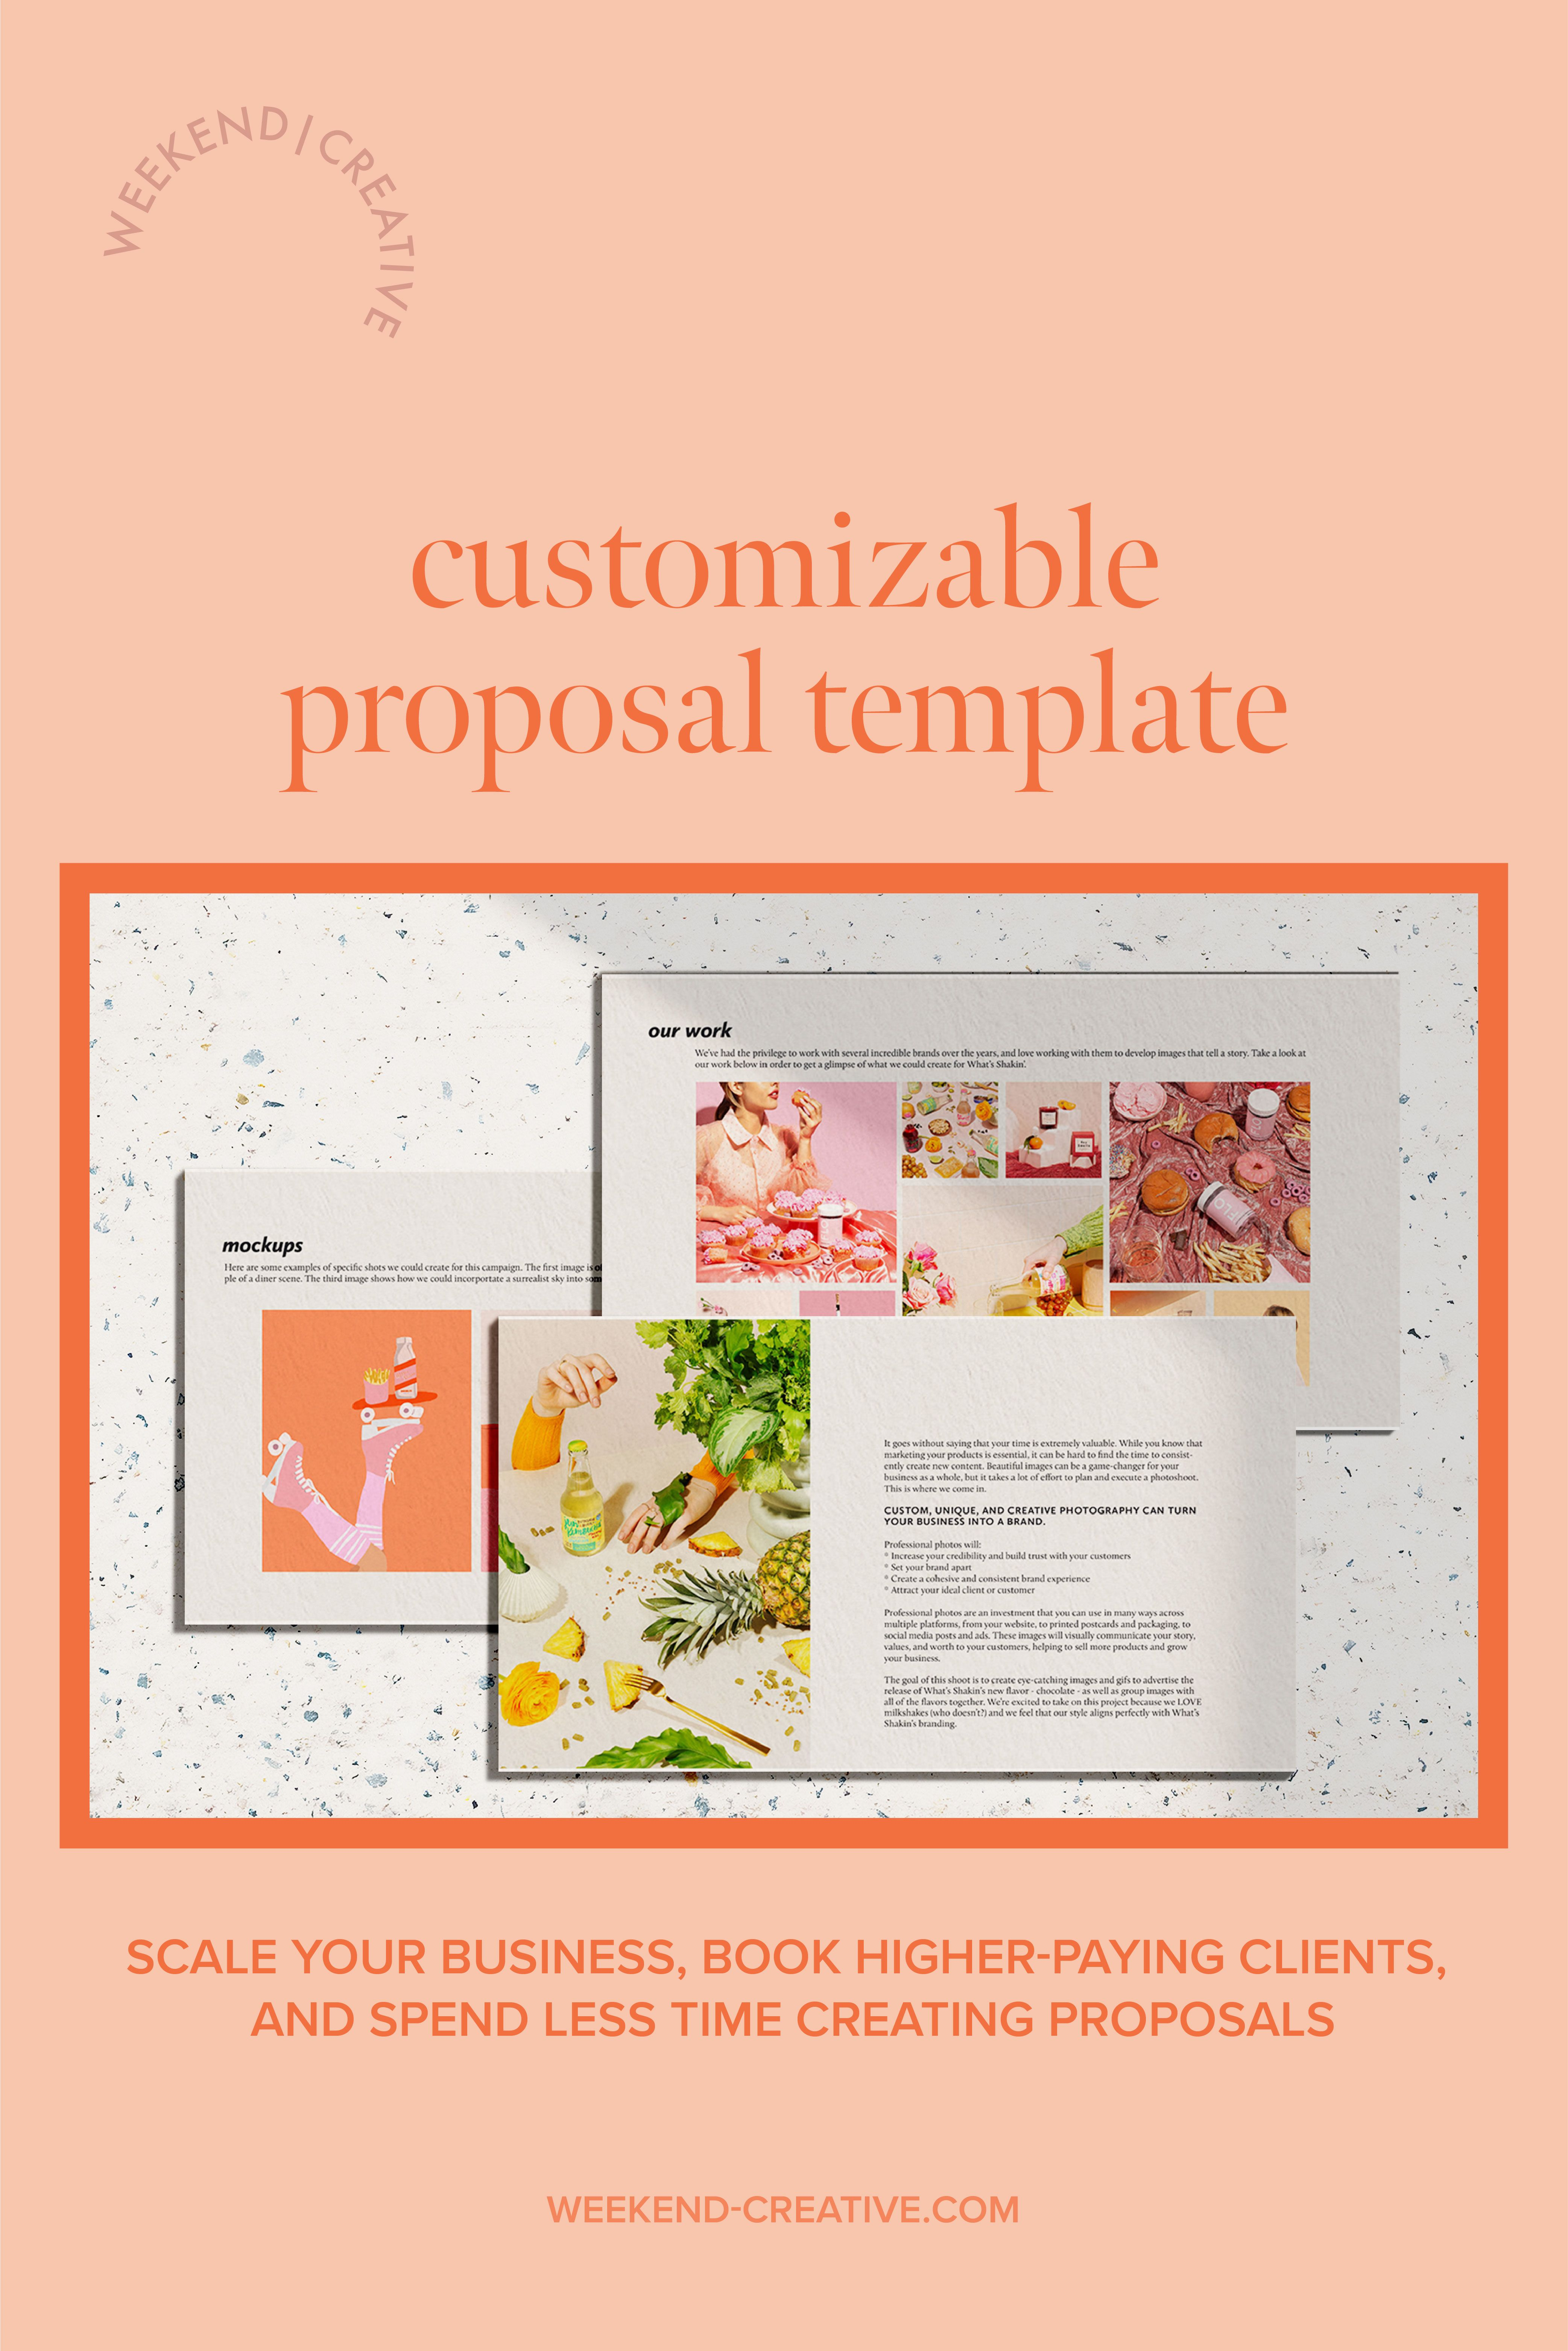 Weekend Creative Shop In 2020 Leaflet Layout Plant Projects Proposal Templates